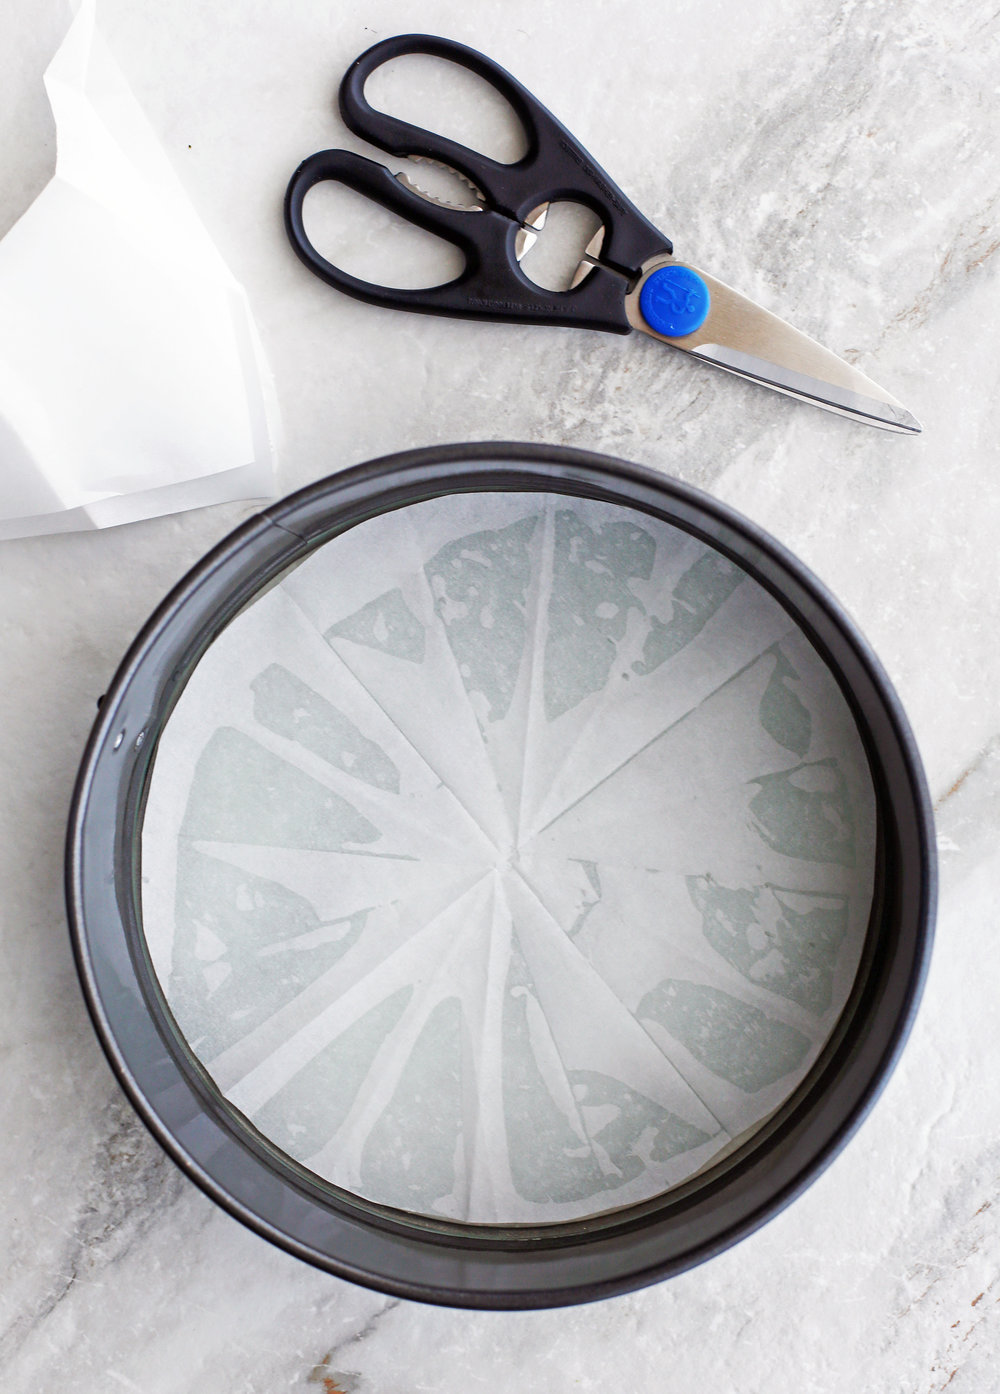 A metal 9-inch round springform pan that's been greased and lined with parchment paper.